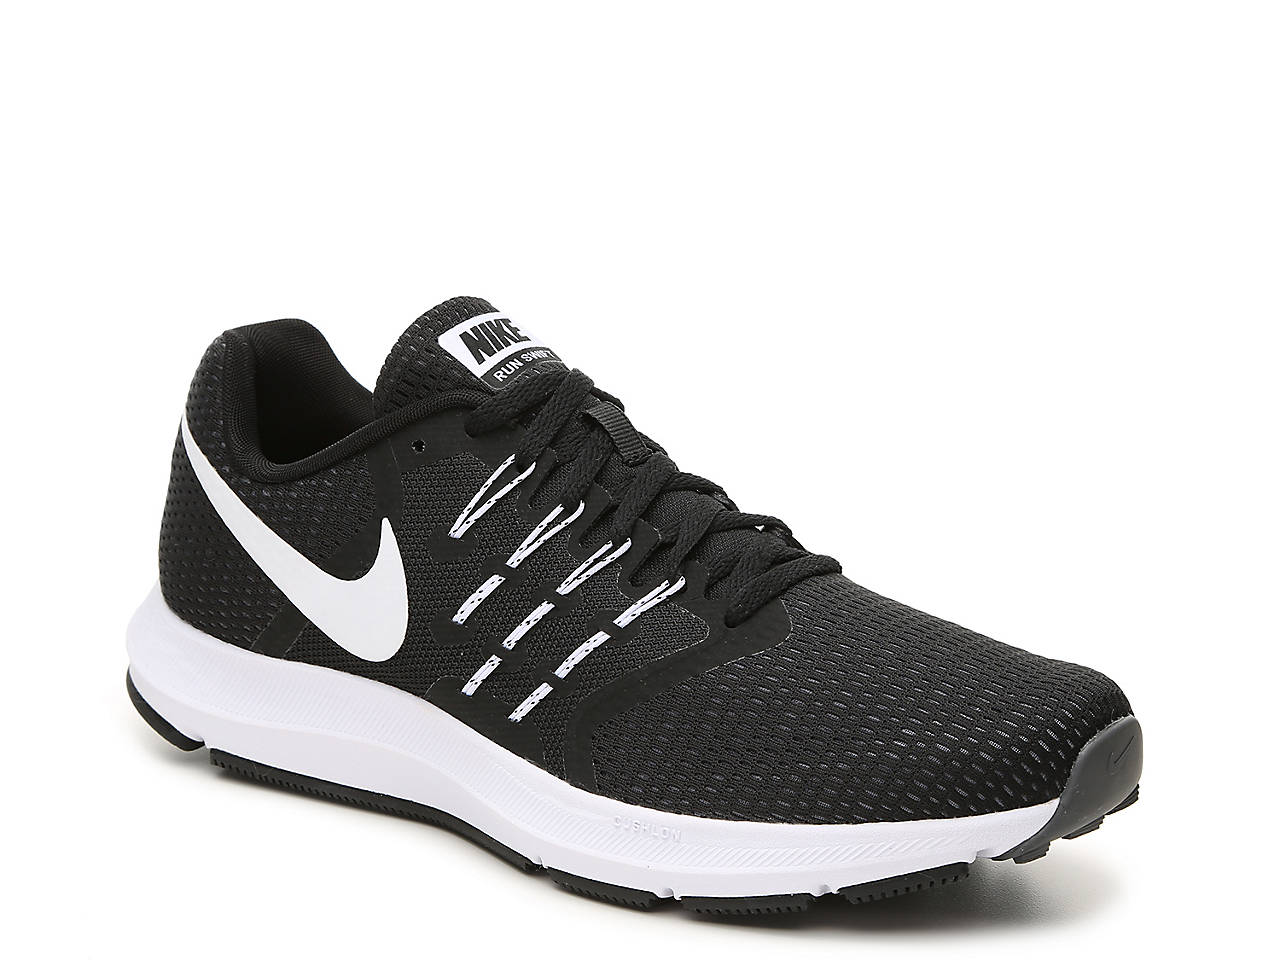 abd759f81 Nike Run Swift Lightweight Running Shoe - Men s Men s Shoes